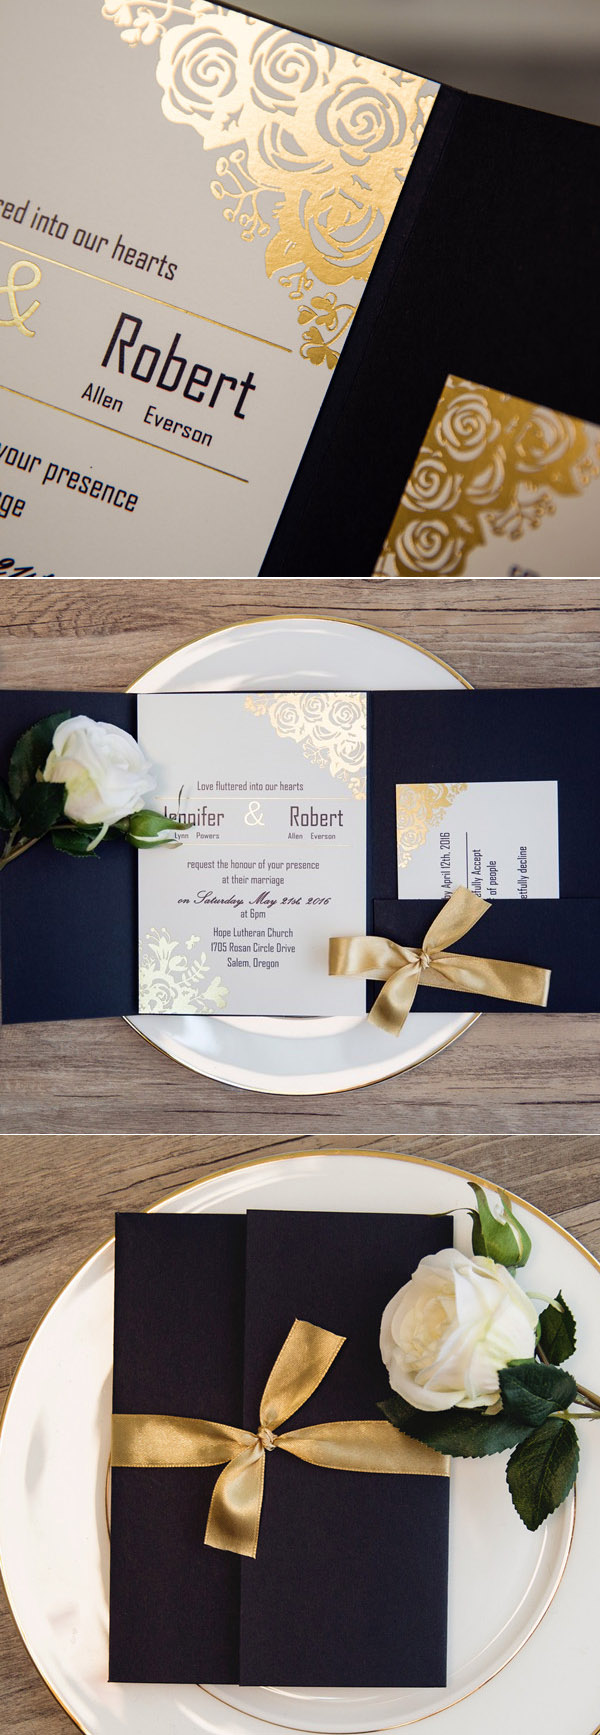 wedding_trends_2017_wedding_invitations_gold_silver_bronze